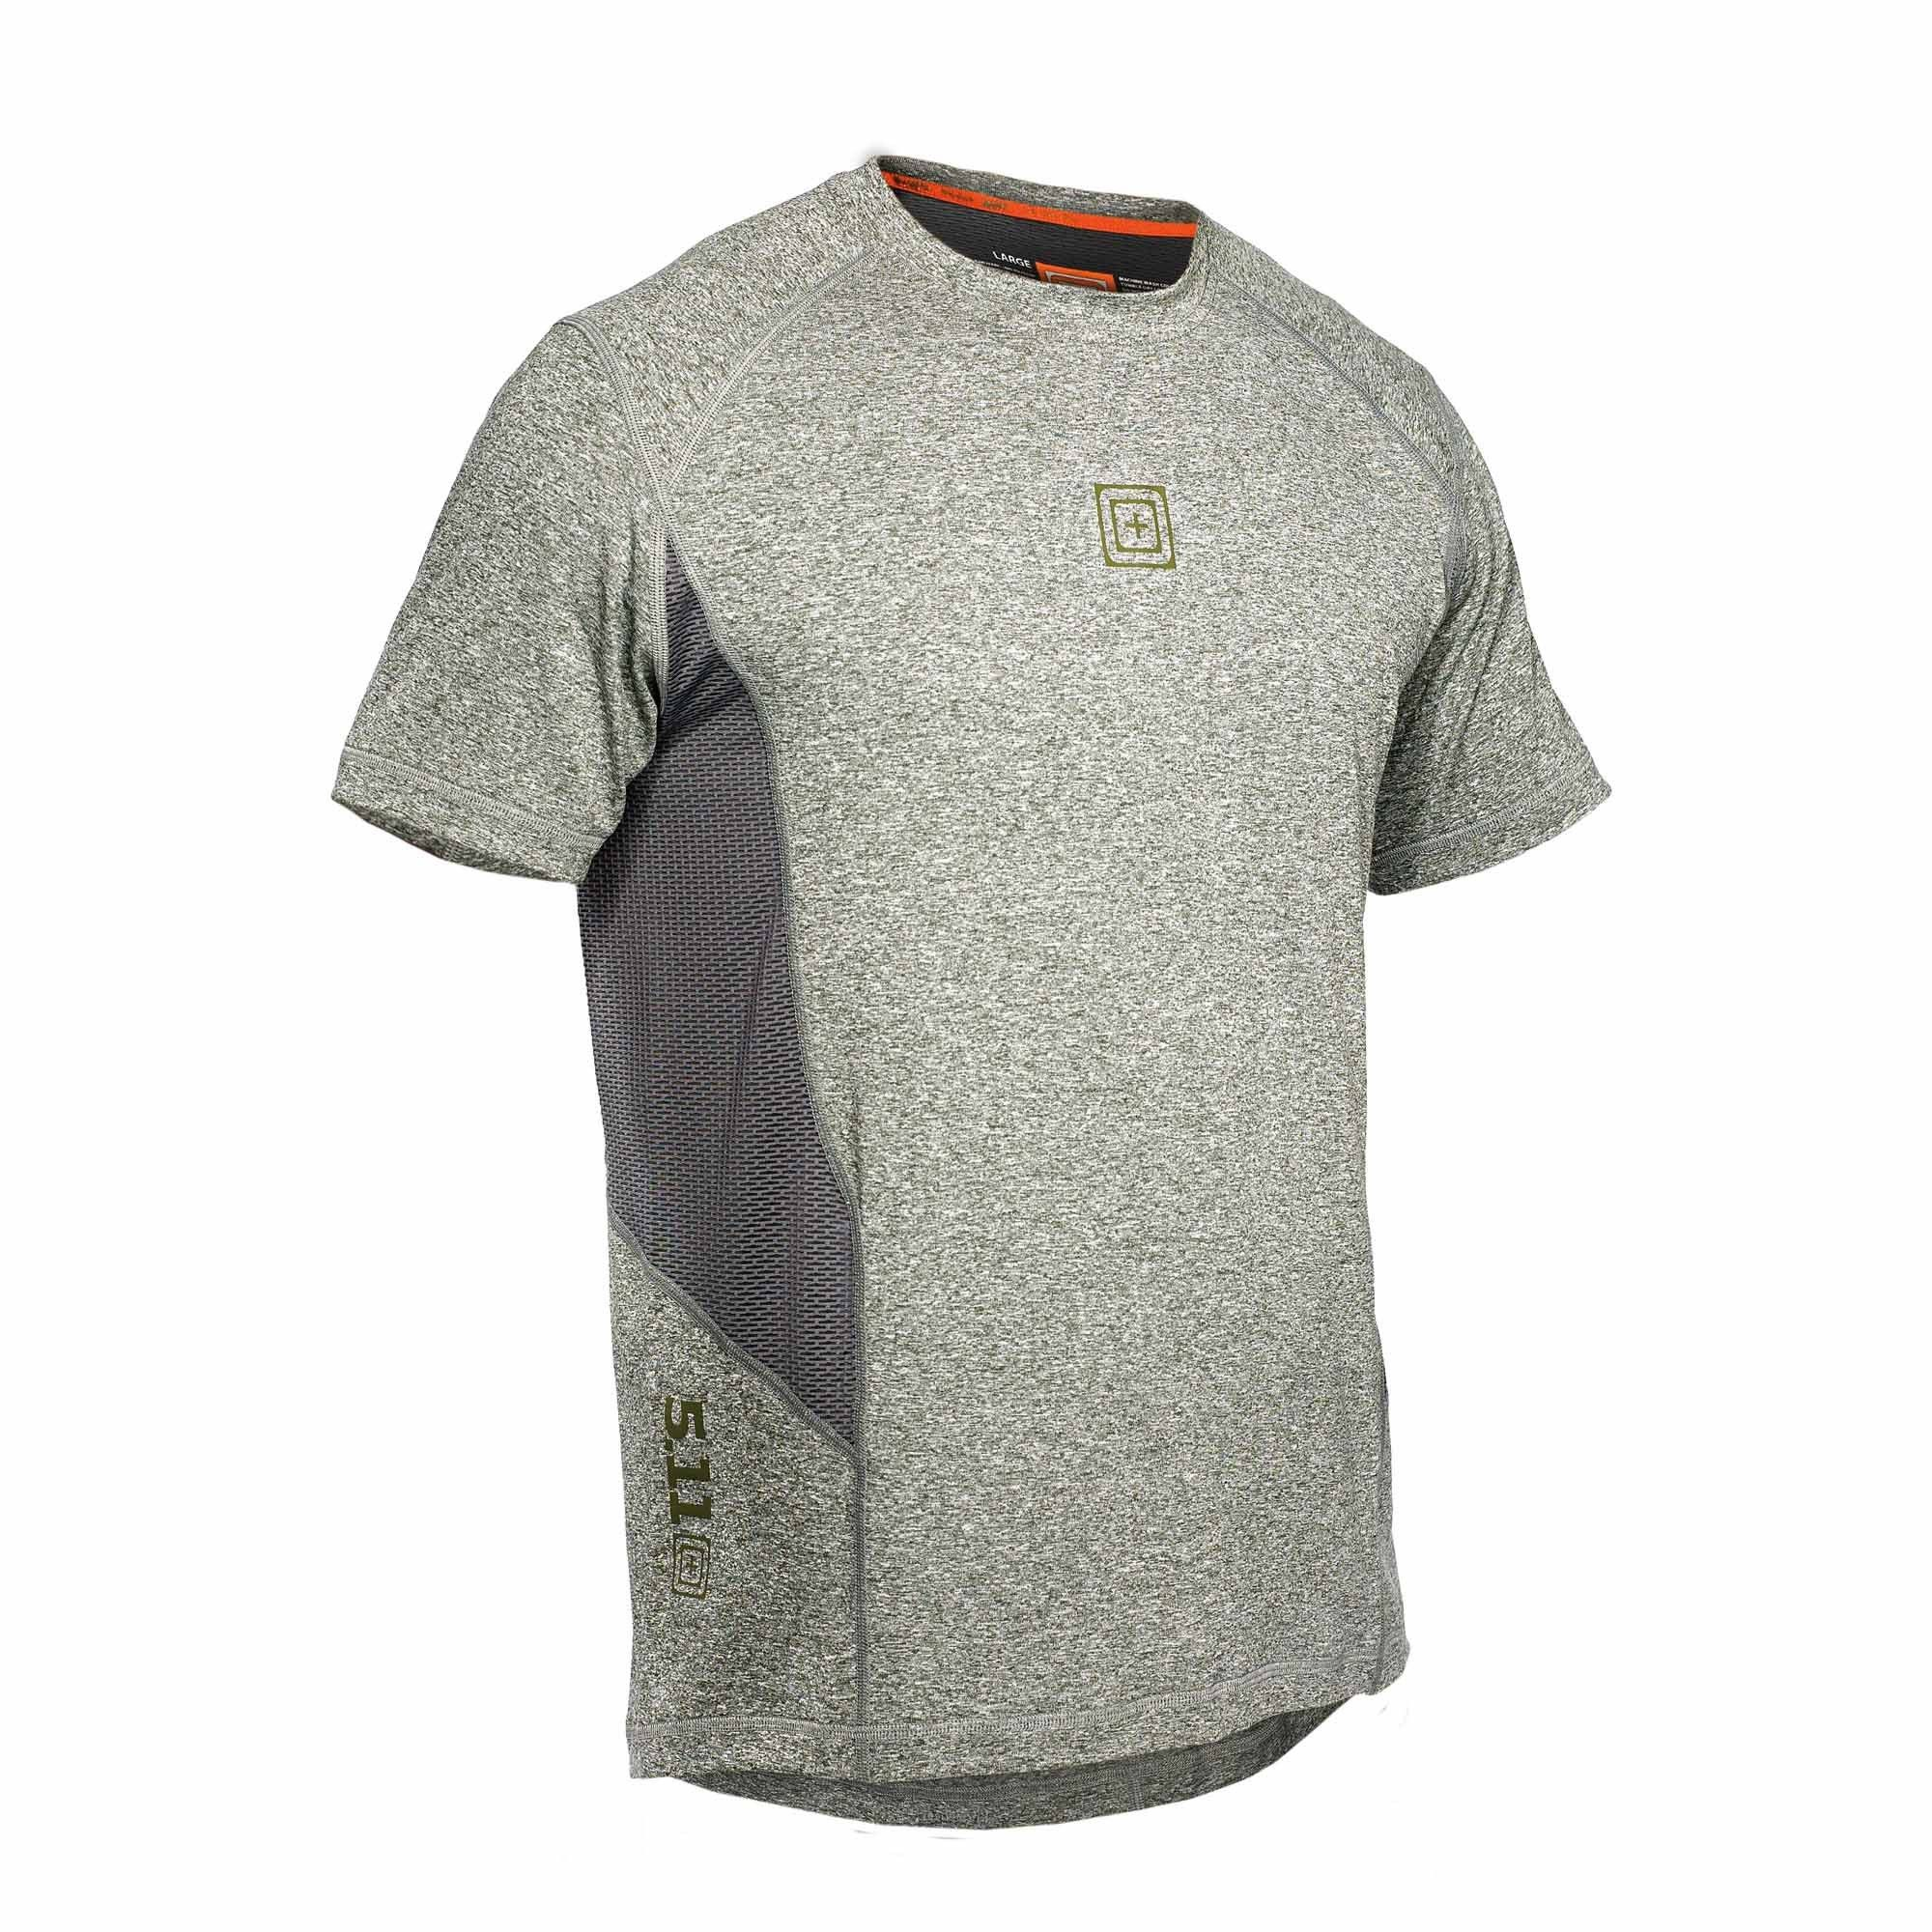 9a41a62e 5.11 RECON Performance Short Sleeve Fitness Shirt | 5.11 Tactical ...